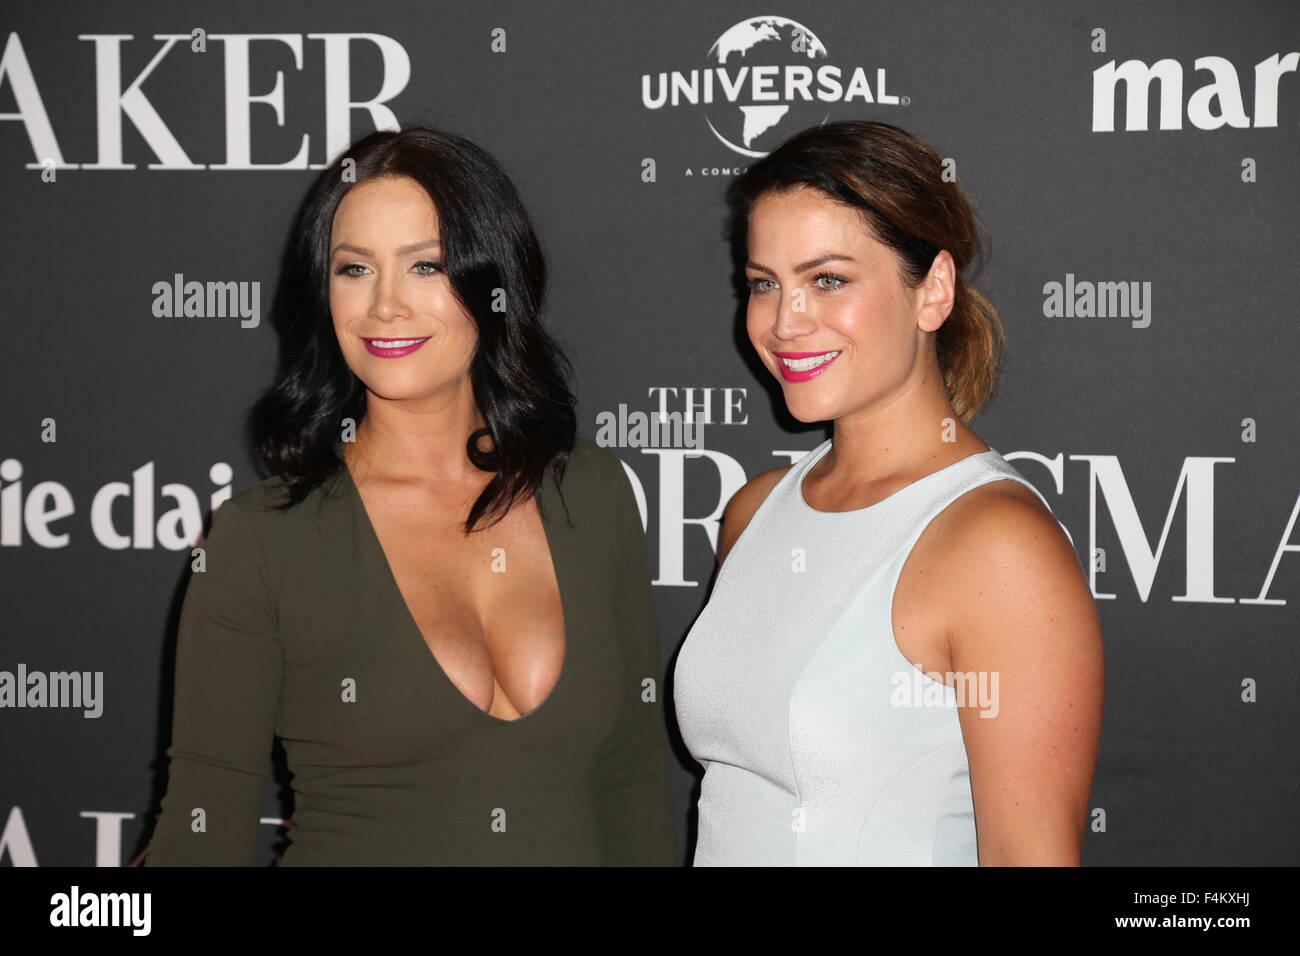 Sydney Australia 20 October 2015 Pictured The Block Twins Alisa And Lysandra Fraser Cast Members And Celebrities Walked The Red Carpet To Celebrate The Release Of The New Comedy Drama The Dressmaker At